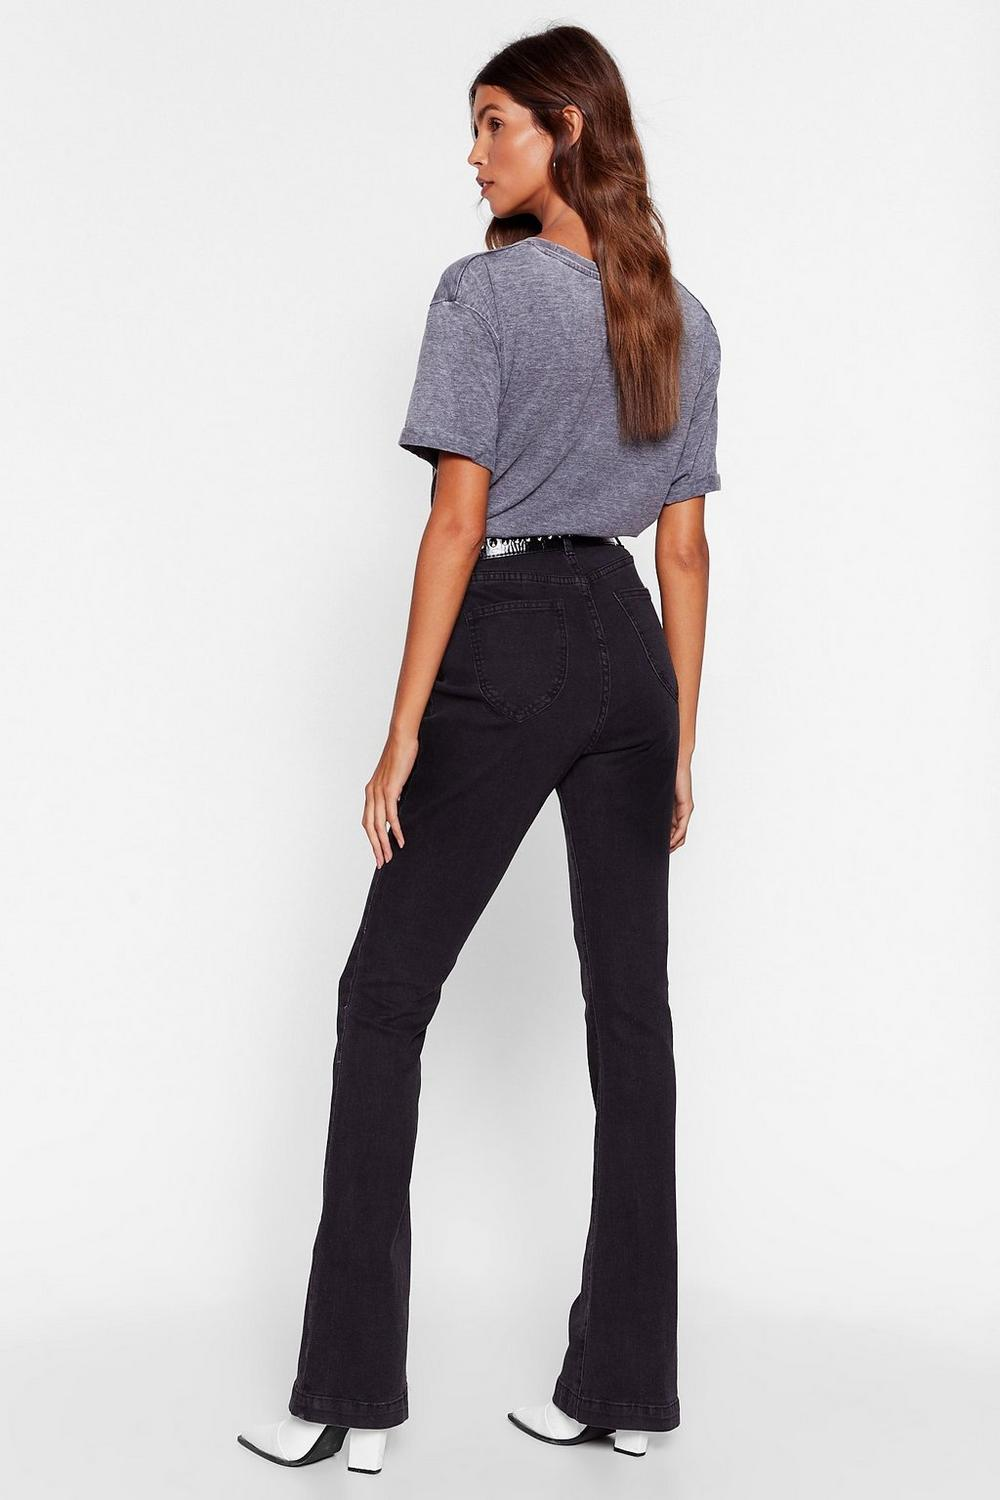 a30616ee Donna High-Waisted Flare Jeans | Shop Clothes at Nasty Gal!